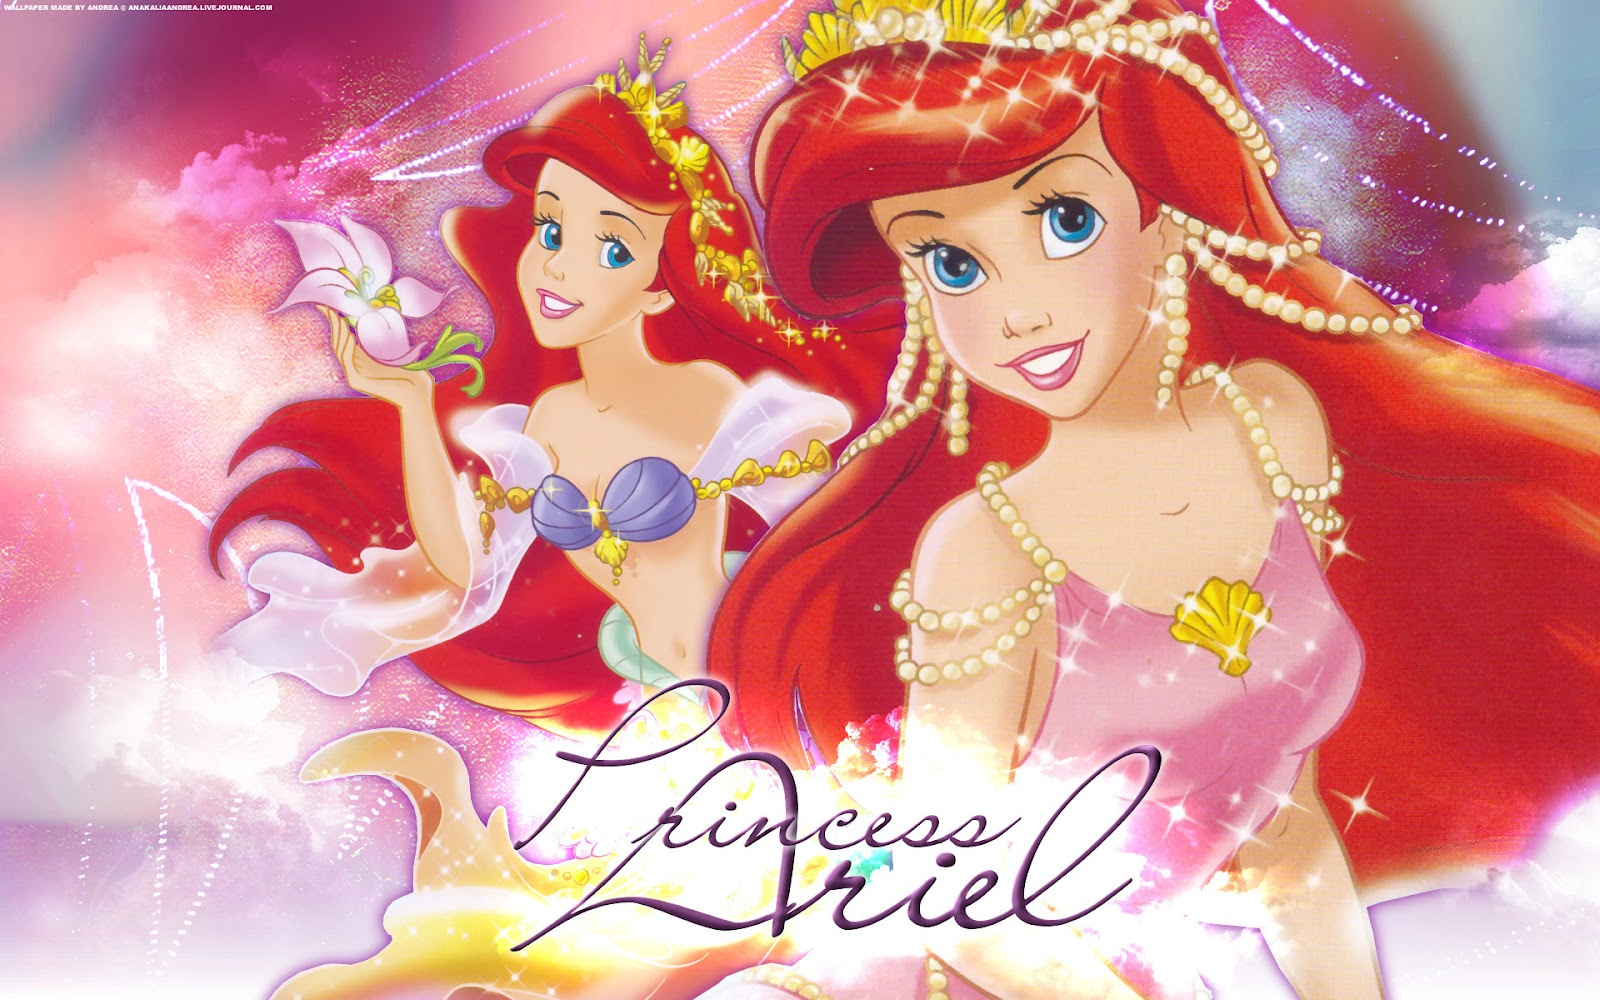 11 Beautifull Litle Mermaid Disney Princess Ariel Characters - photo#38